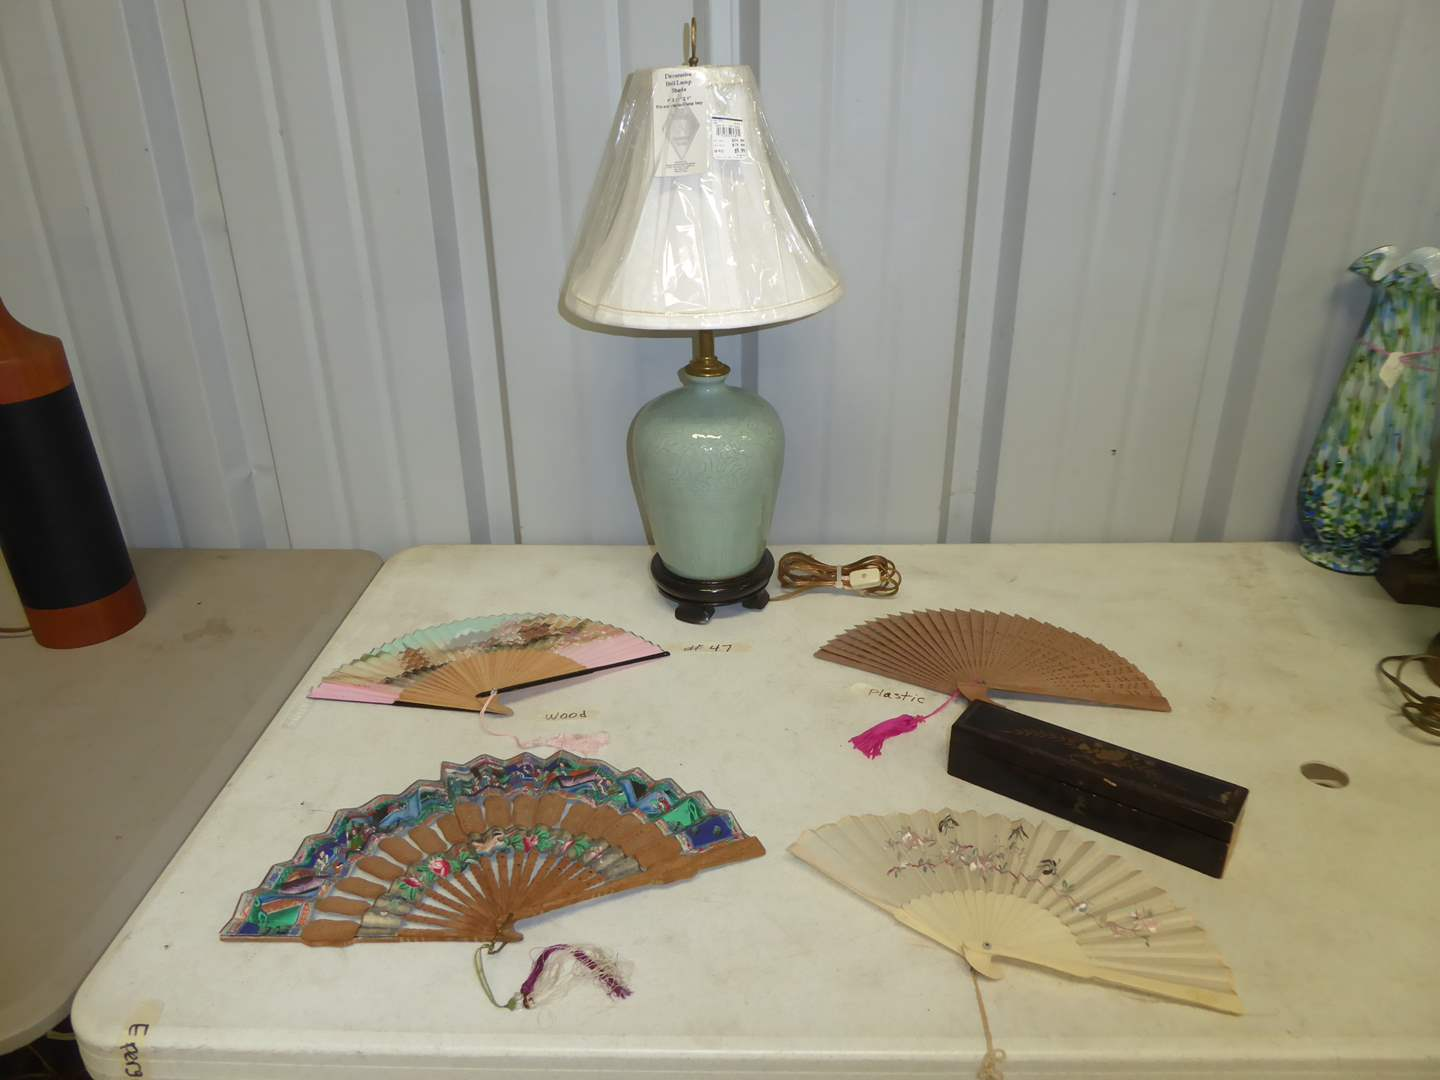 Lot # 47 - Very Pretty Asian Style Glass Lamp & Vintage Fans  (main image)